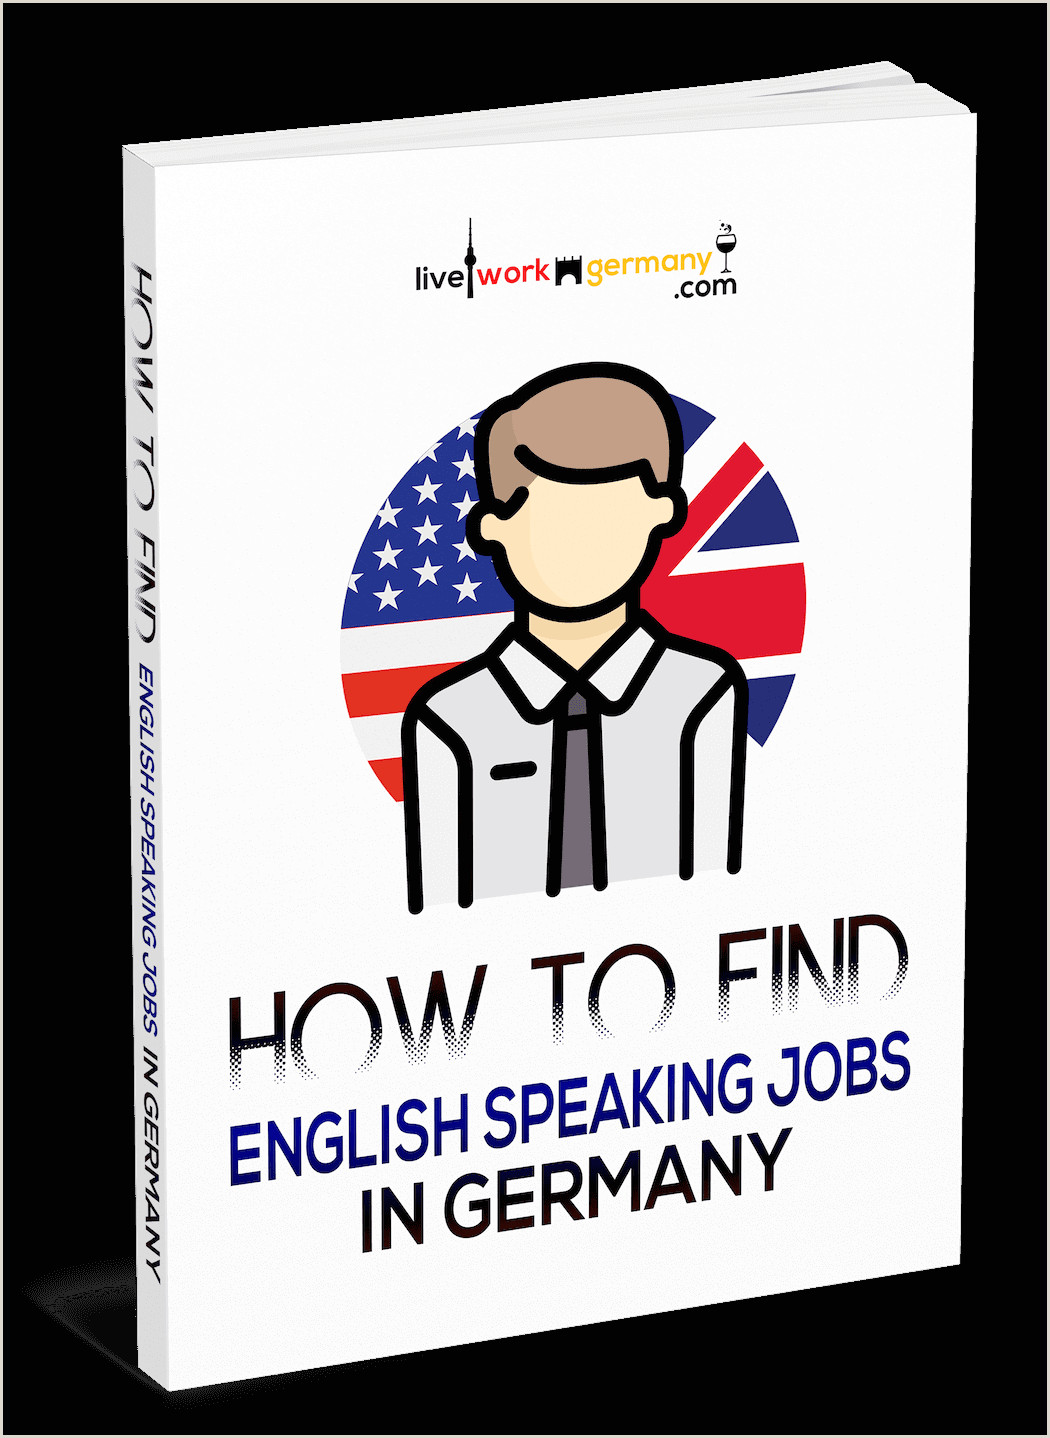 How Can Skilled Professionals Find English Speaking Jobs In